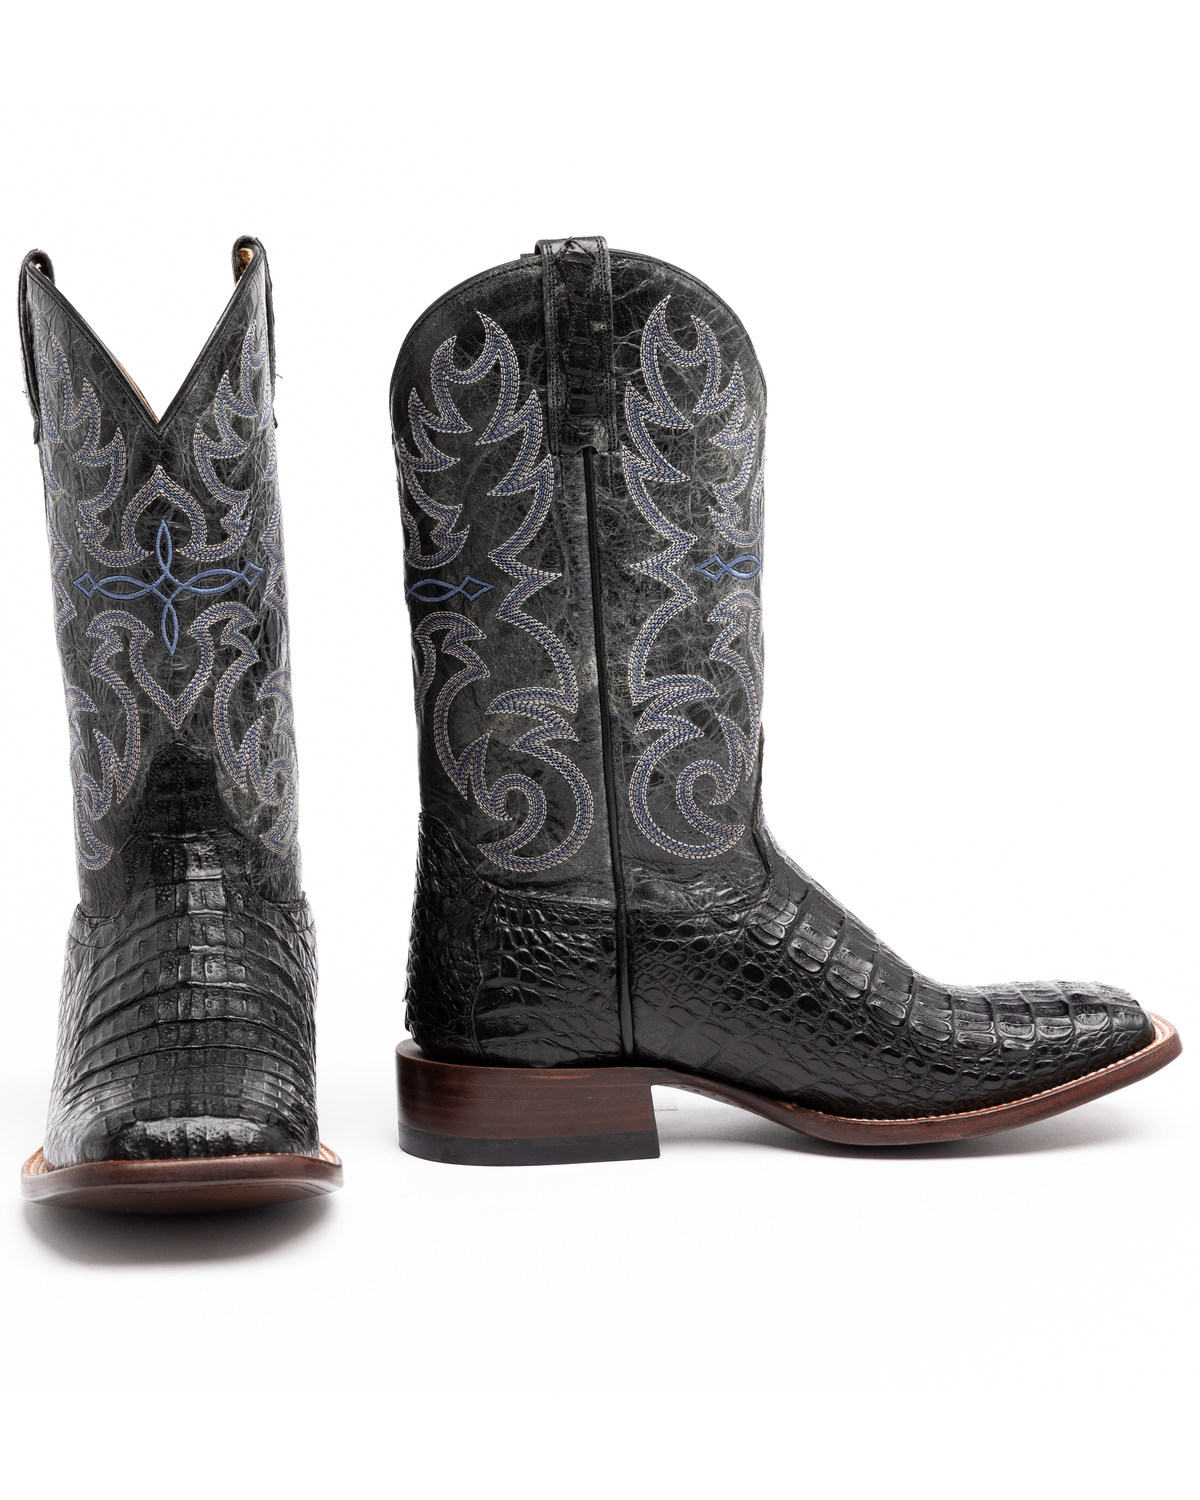 Cody James 174 Men S Caiman Embroidered Exotic Boots Boot Barn